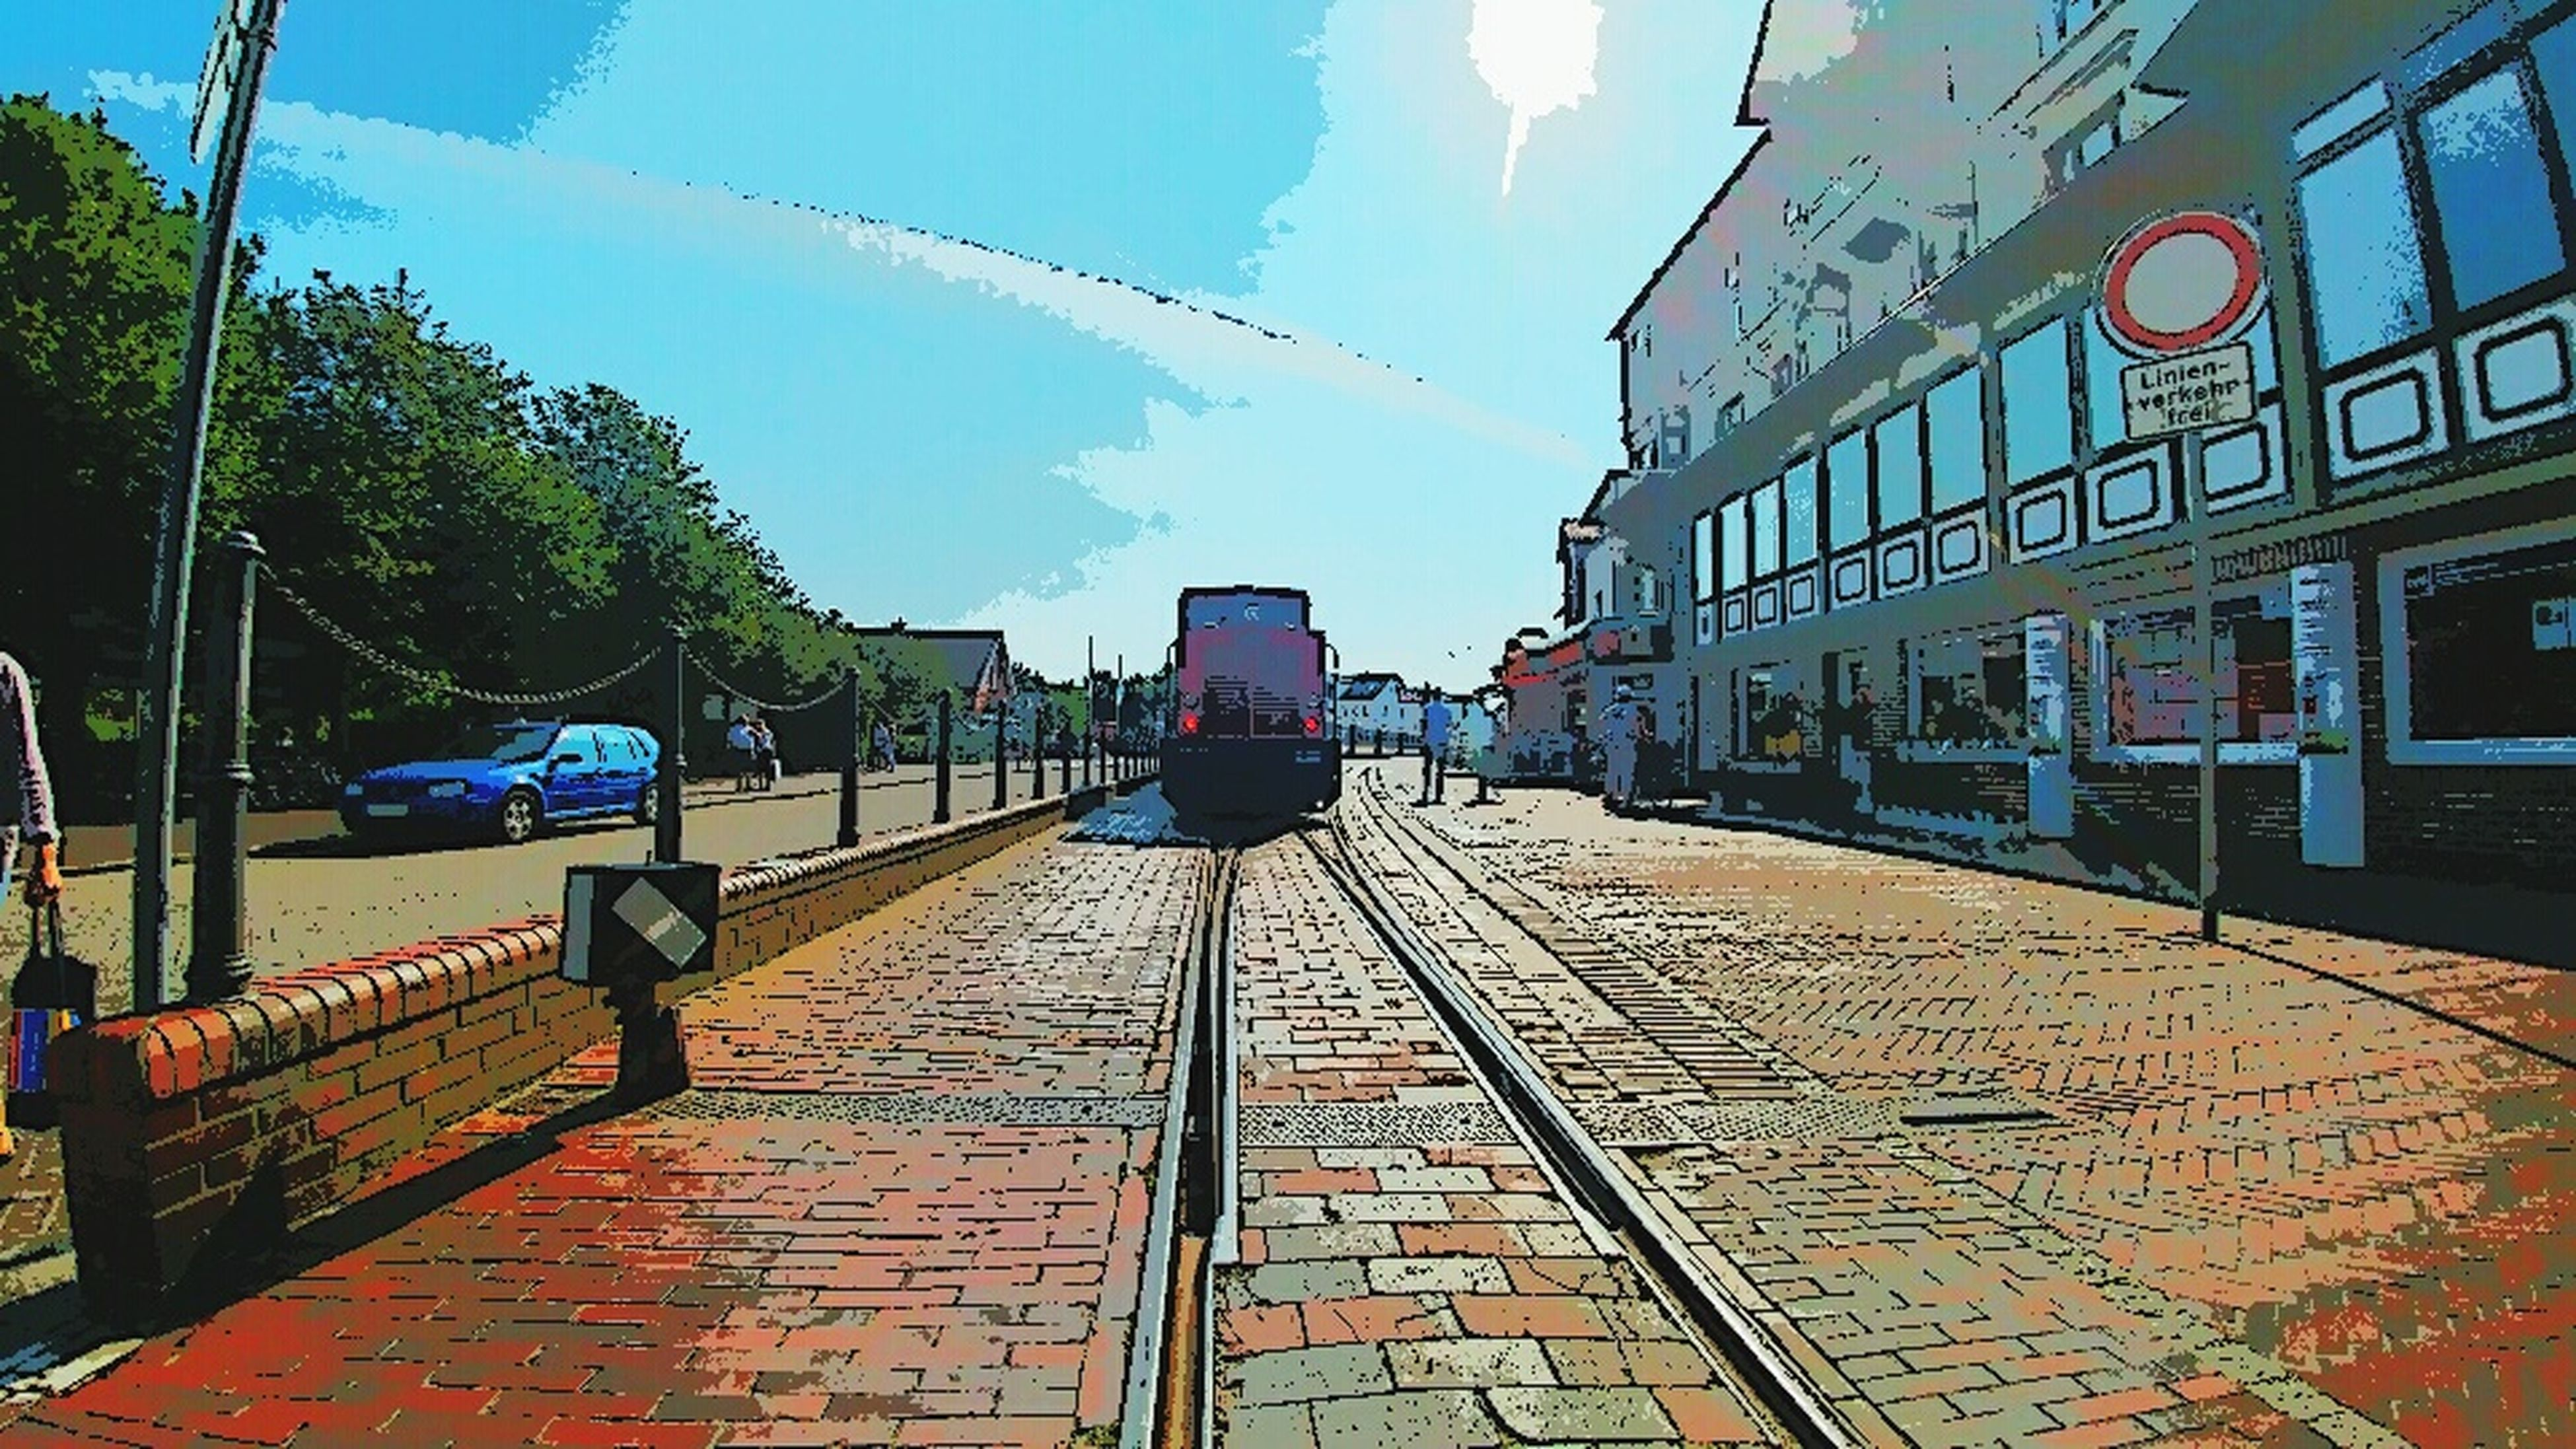 architecture, built structure, building exterior, transportation, railroad track, sky, city, city life, the way forward, day, outdoors, diminishing perspective, blue